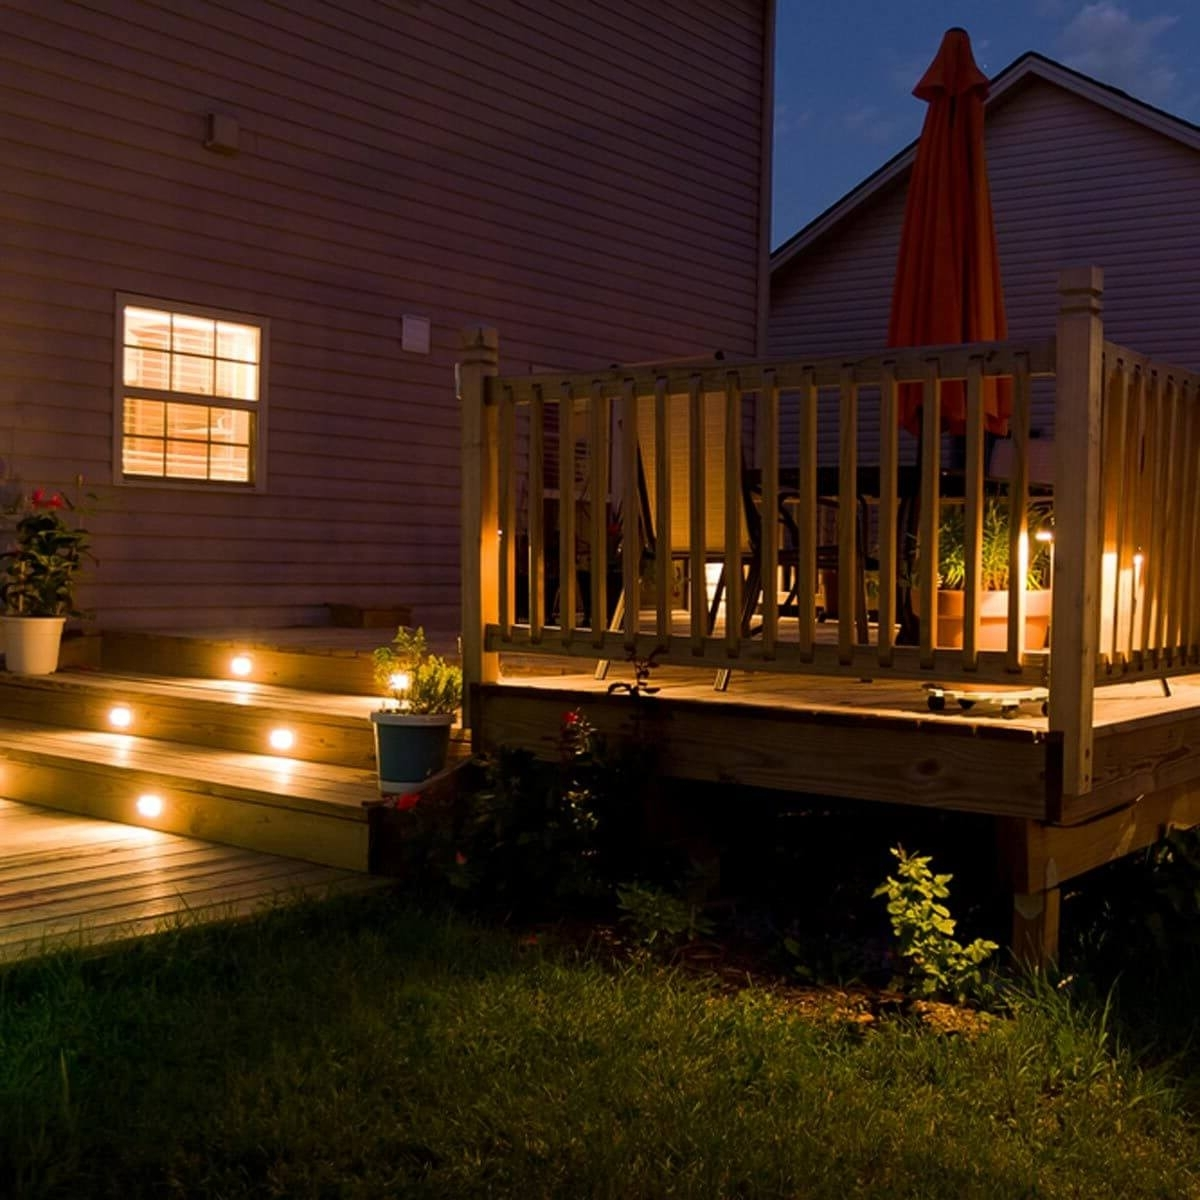 Latest Outdoor Deck Lanterns Within 12 Ideas For Lighting Up Your Deck — The Family Handyman (View 6 of 20)